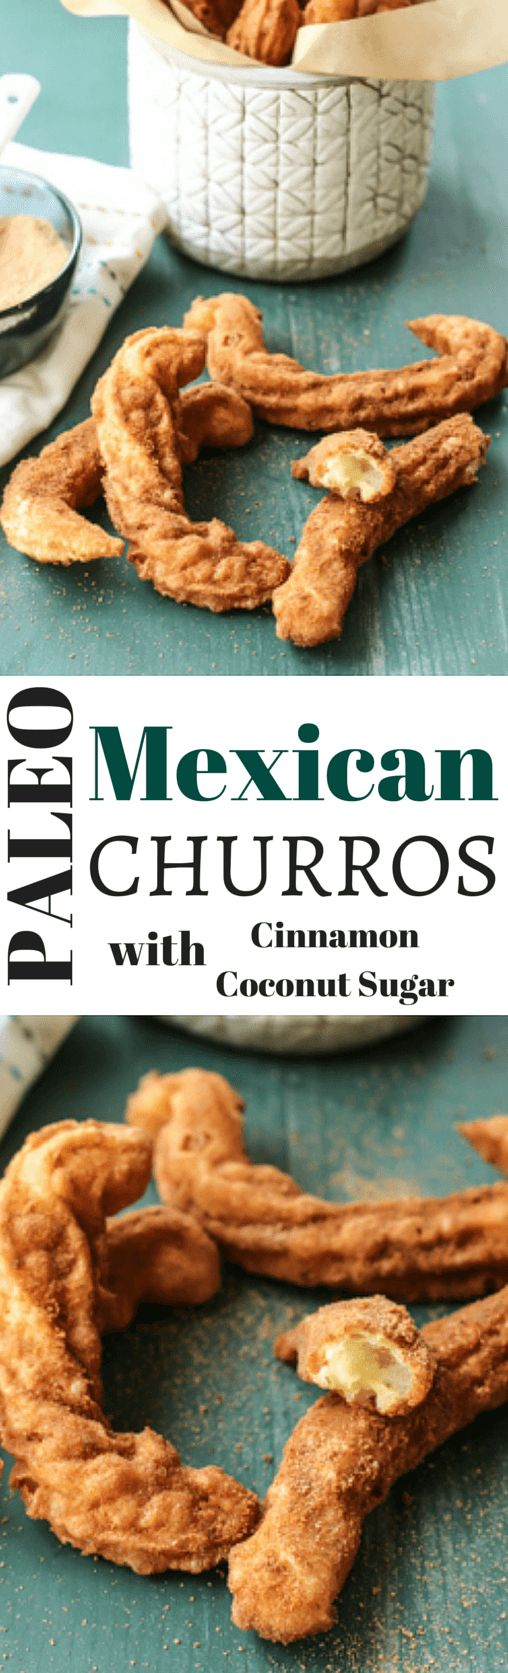 mexican churros with cinnamon coconut sugar pin